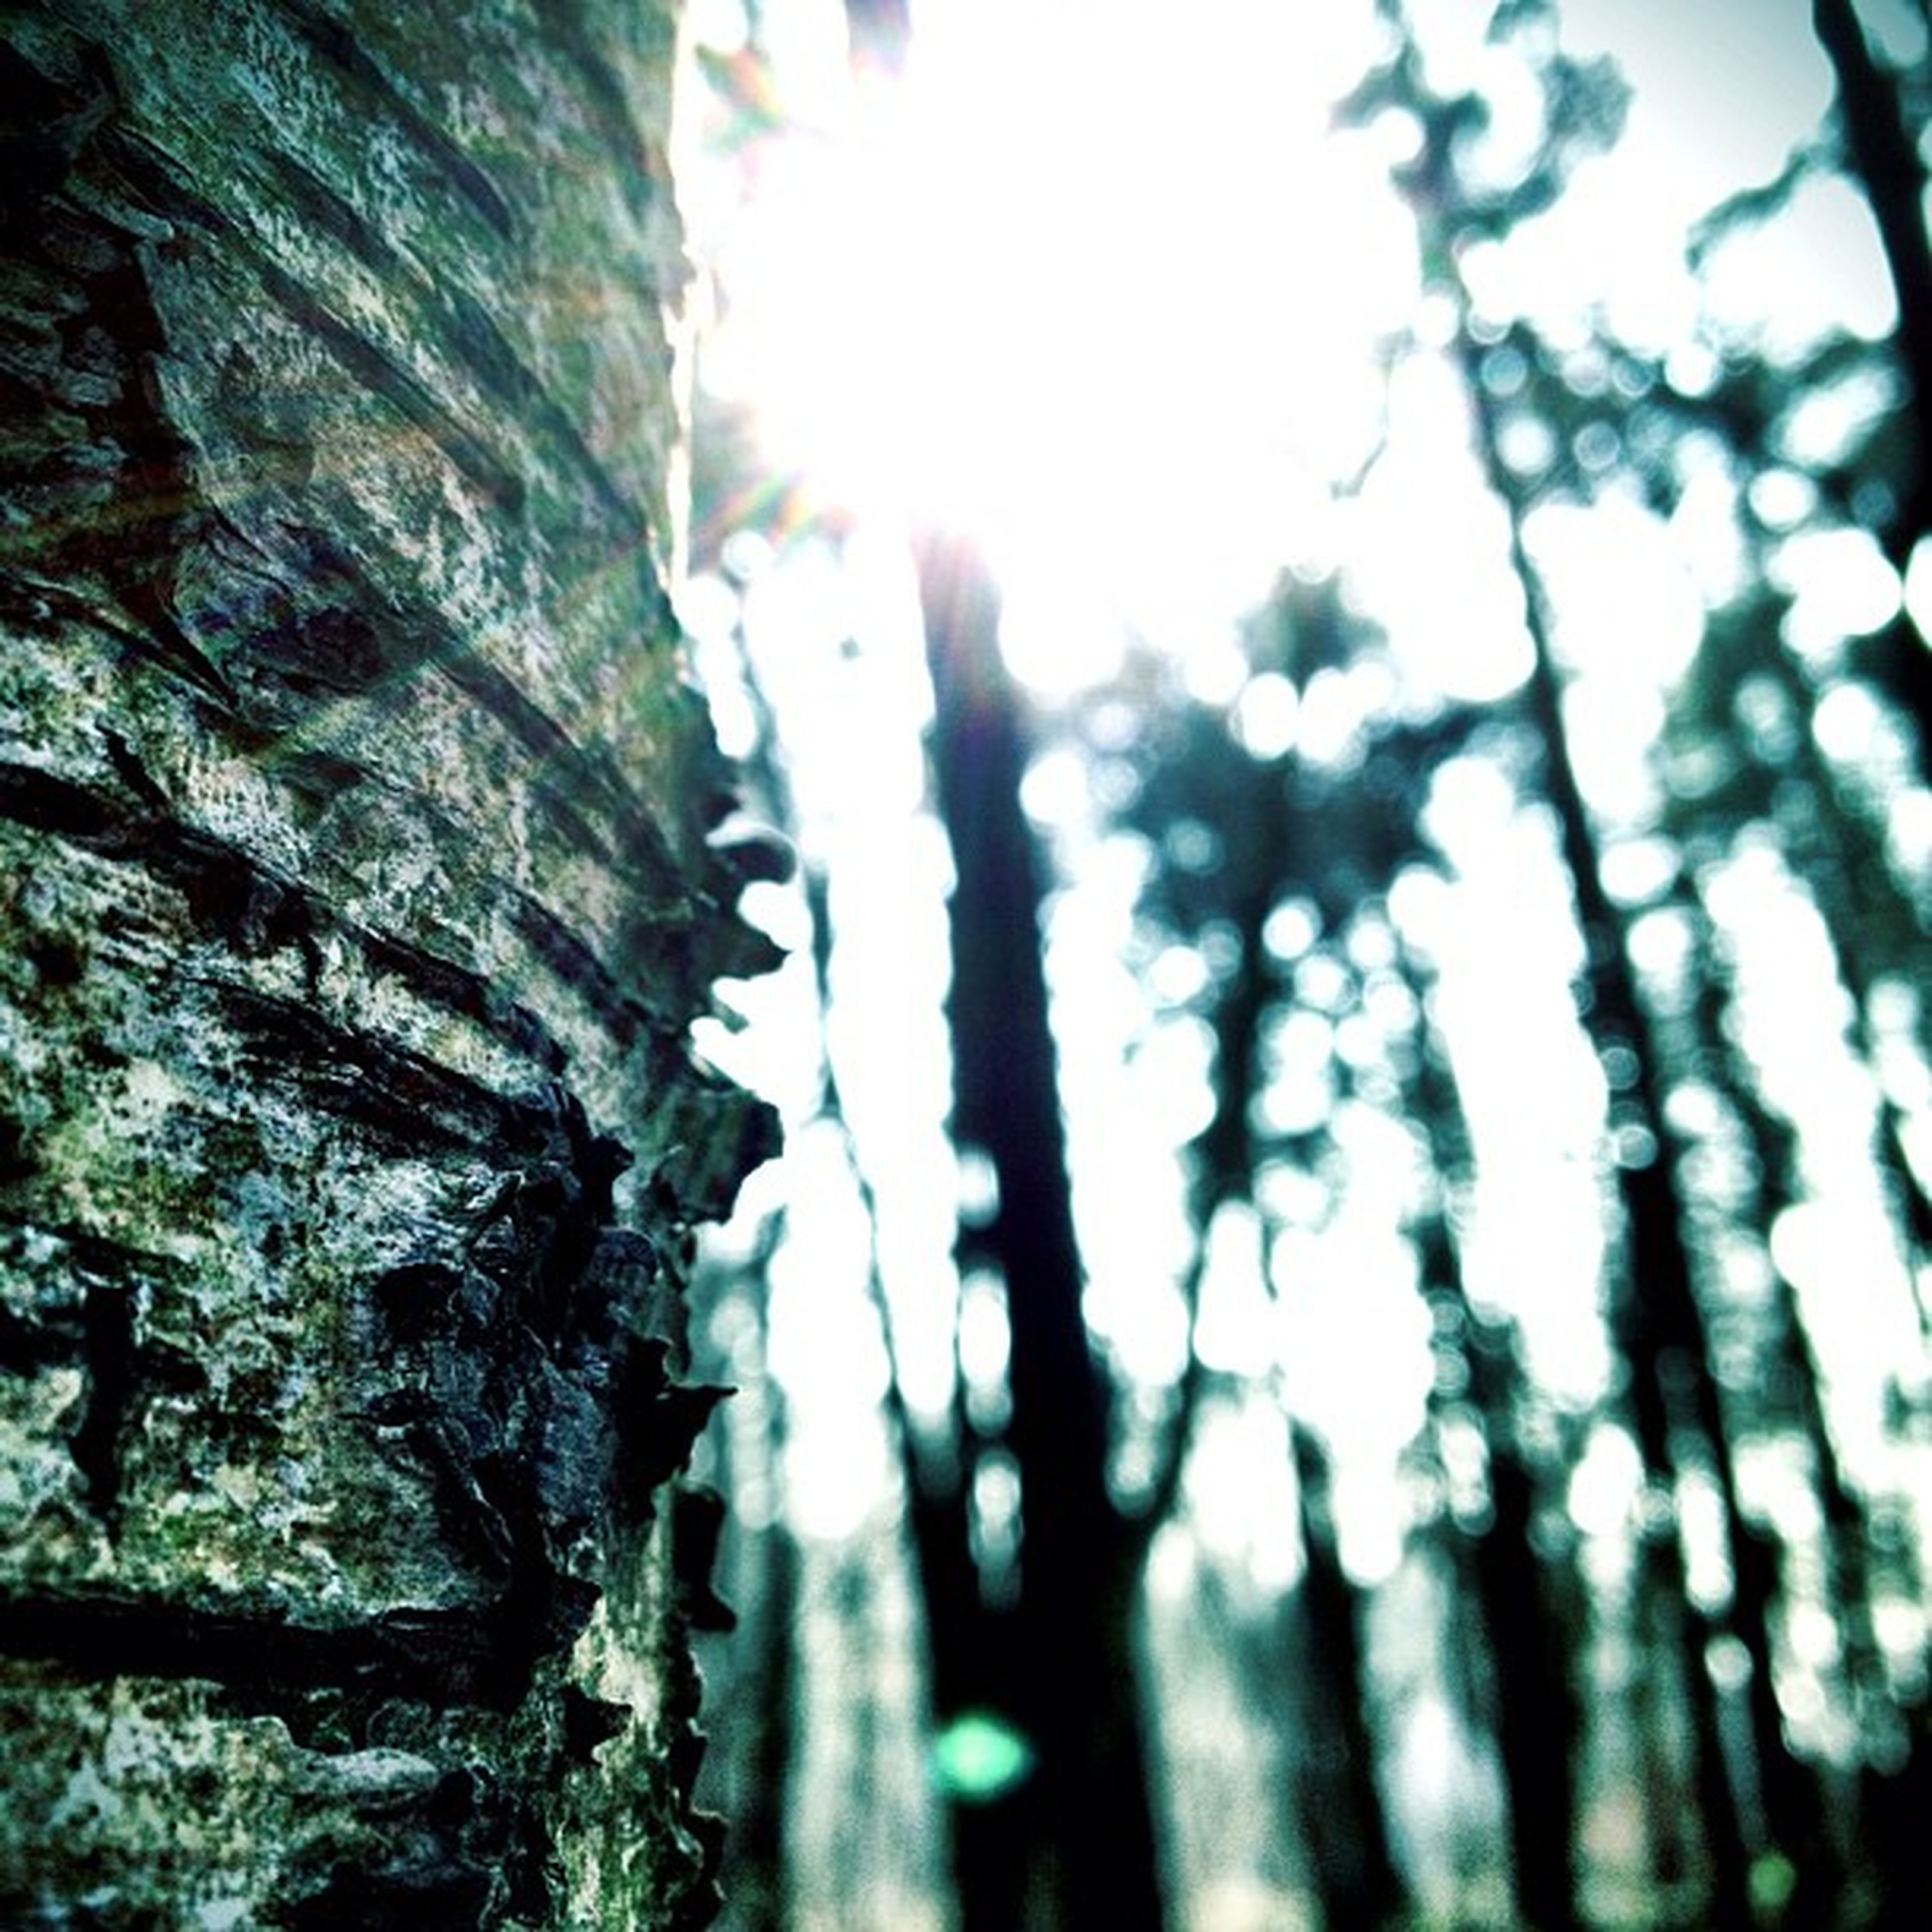 tree, focus on foreground, tree trunk, growth, close-up, selective focus, nature, textured, low angle view, tranquility, day, outdoors, branch, no people, beauty in nature, forest, sunlight, rough, clear sky, leaf